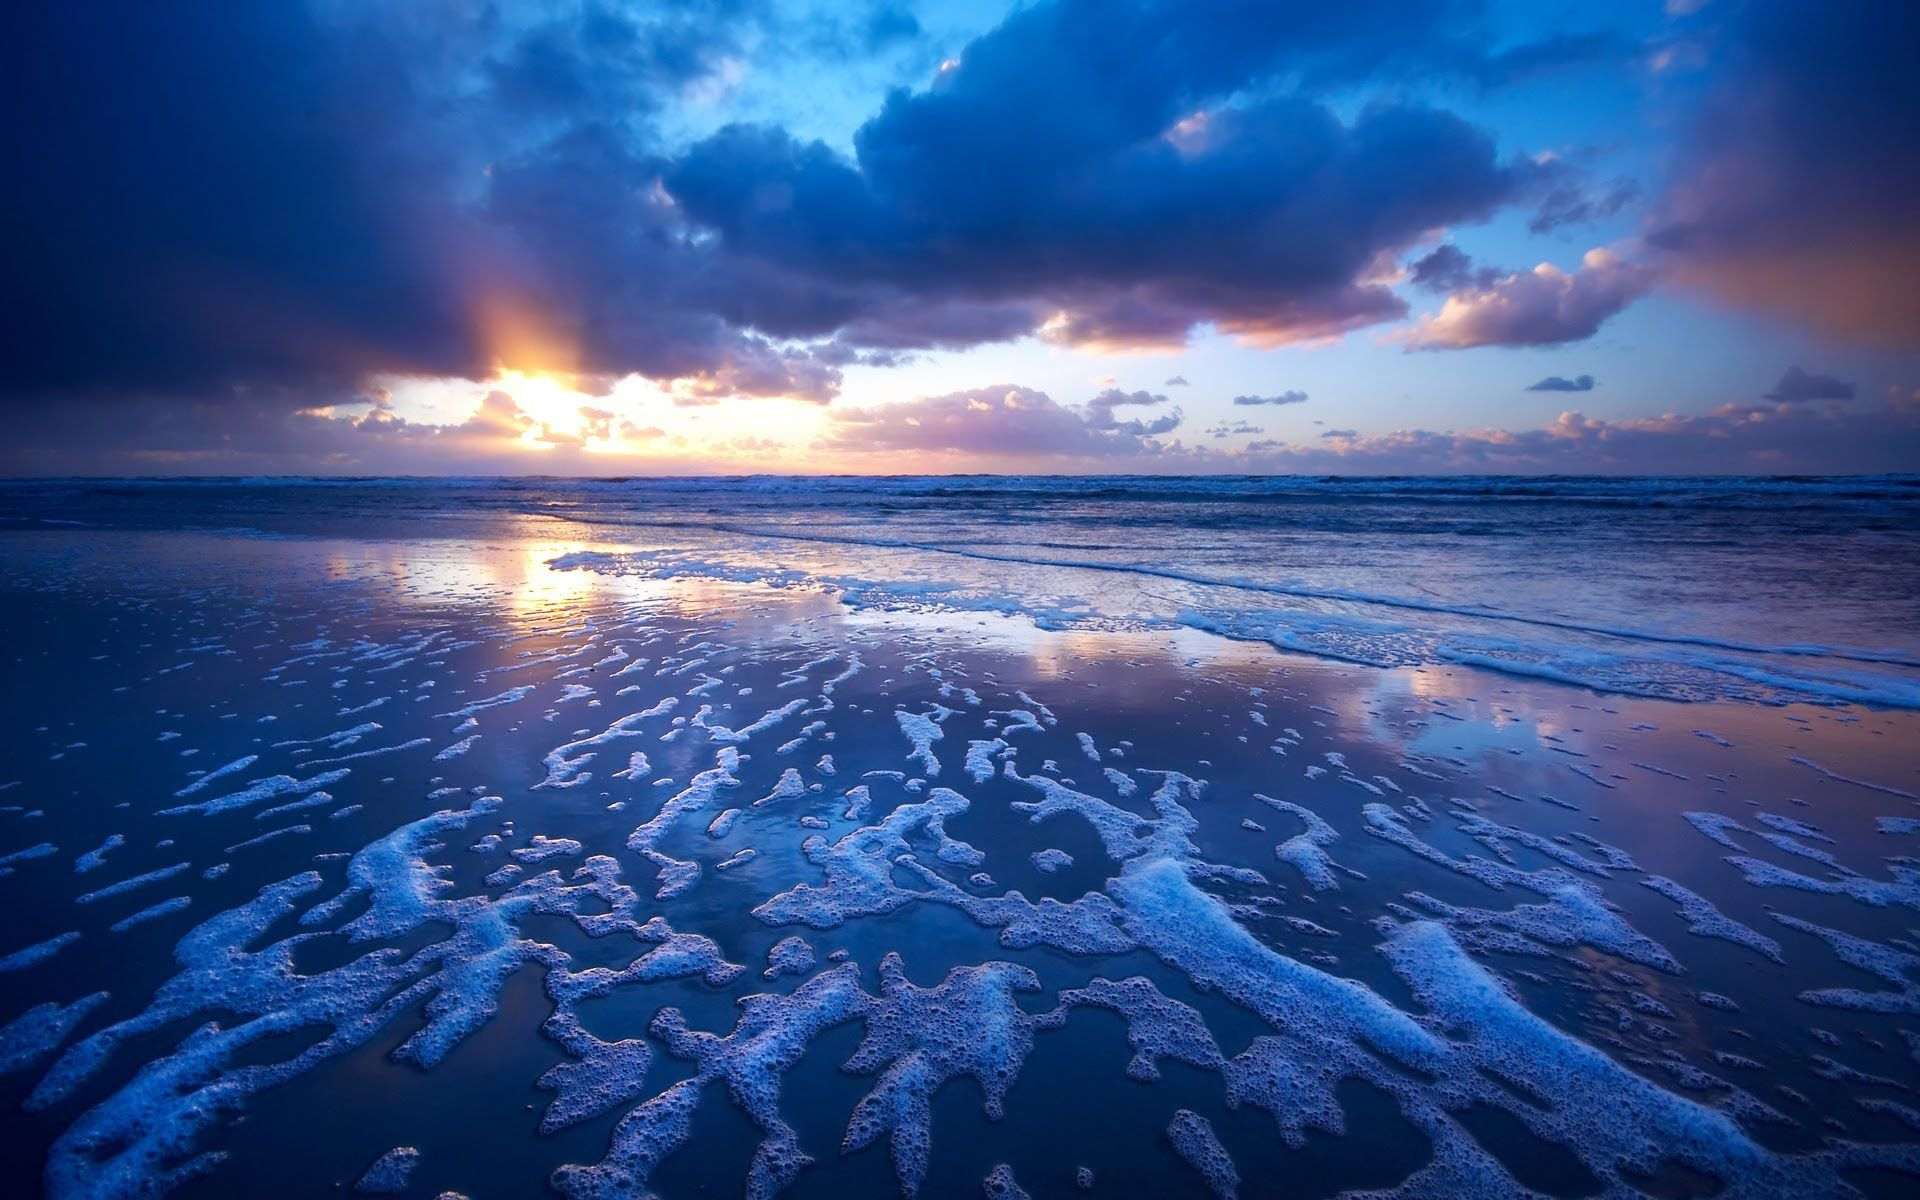 Earth Beautiful Ocean Nature Ocean Hd The Ocean Is Essential To Life On Earth Most Of Earth S Water Is Stored In The Ocean Ocean Pictures Beautiful Ocean Waves Wallpaper